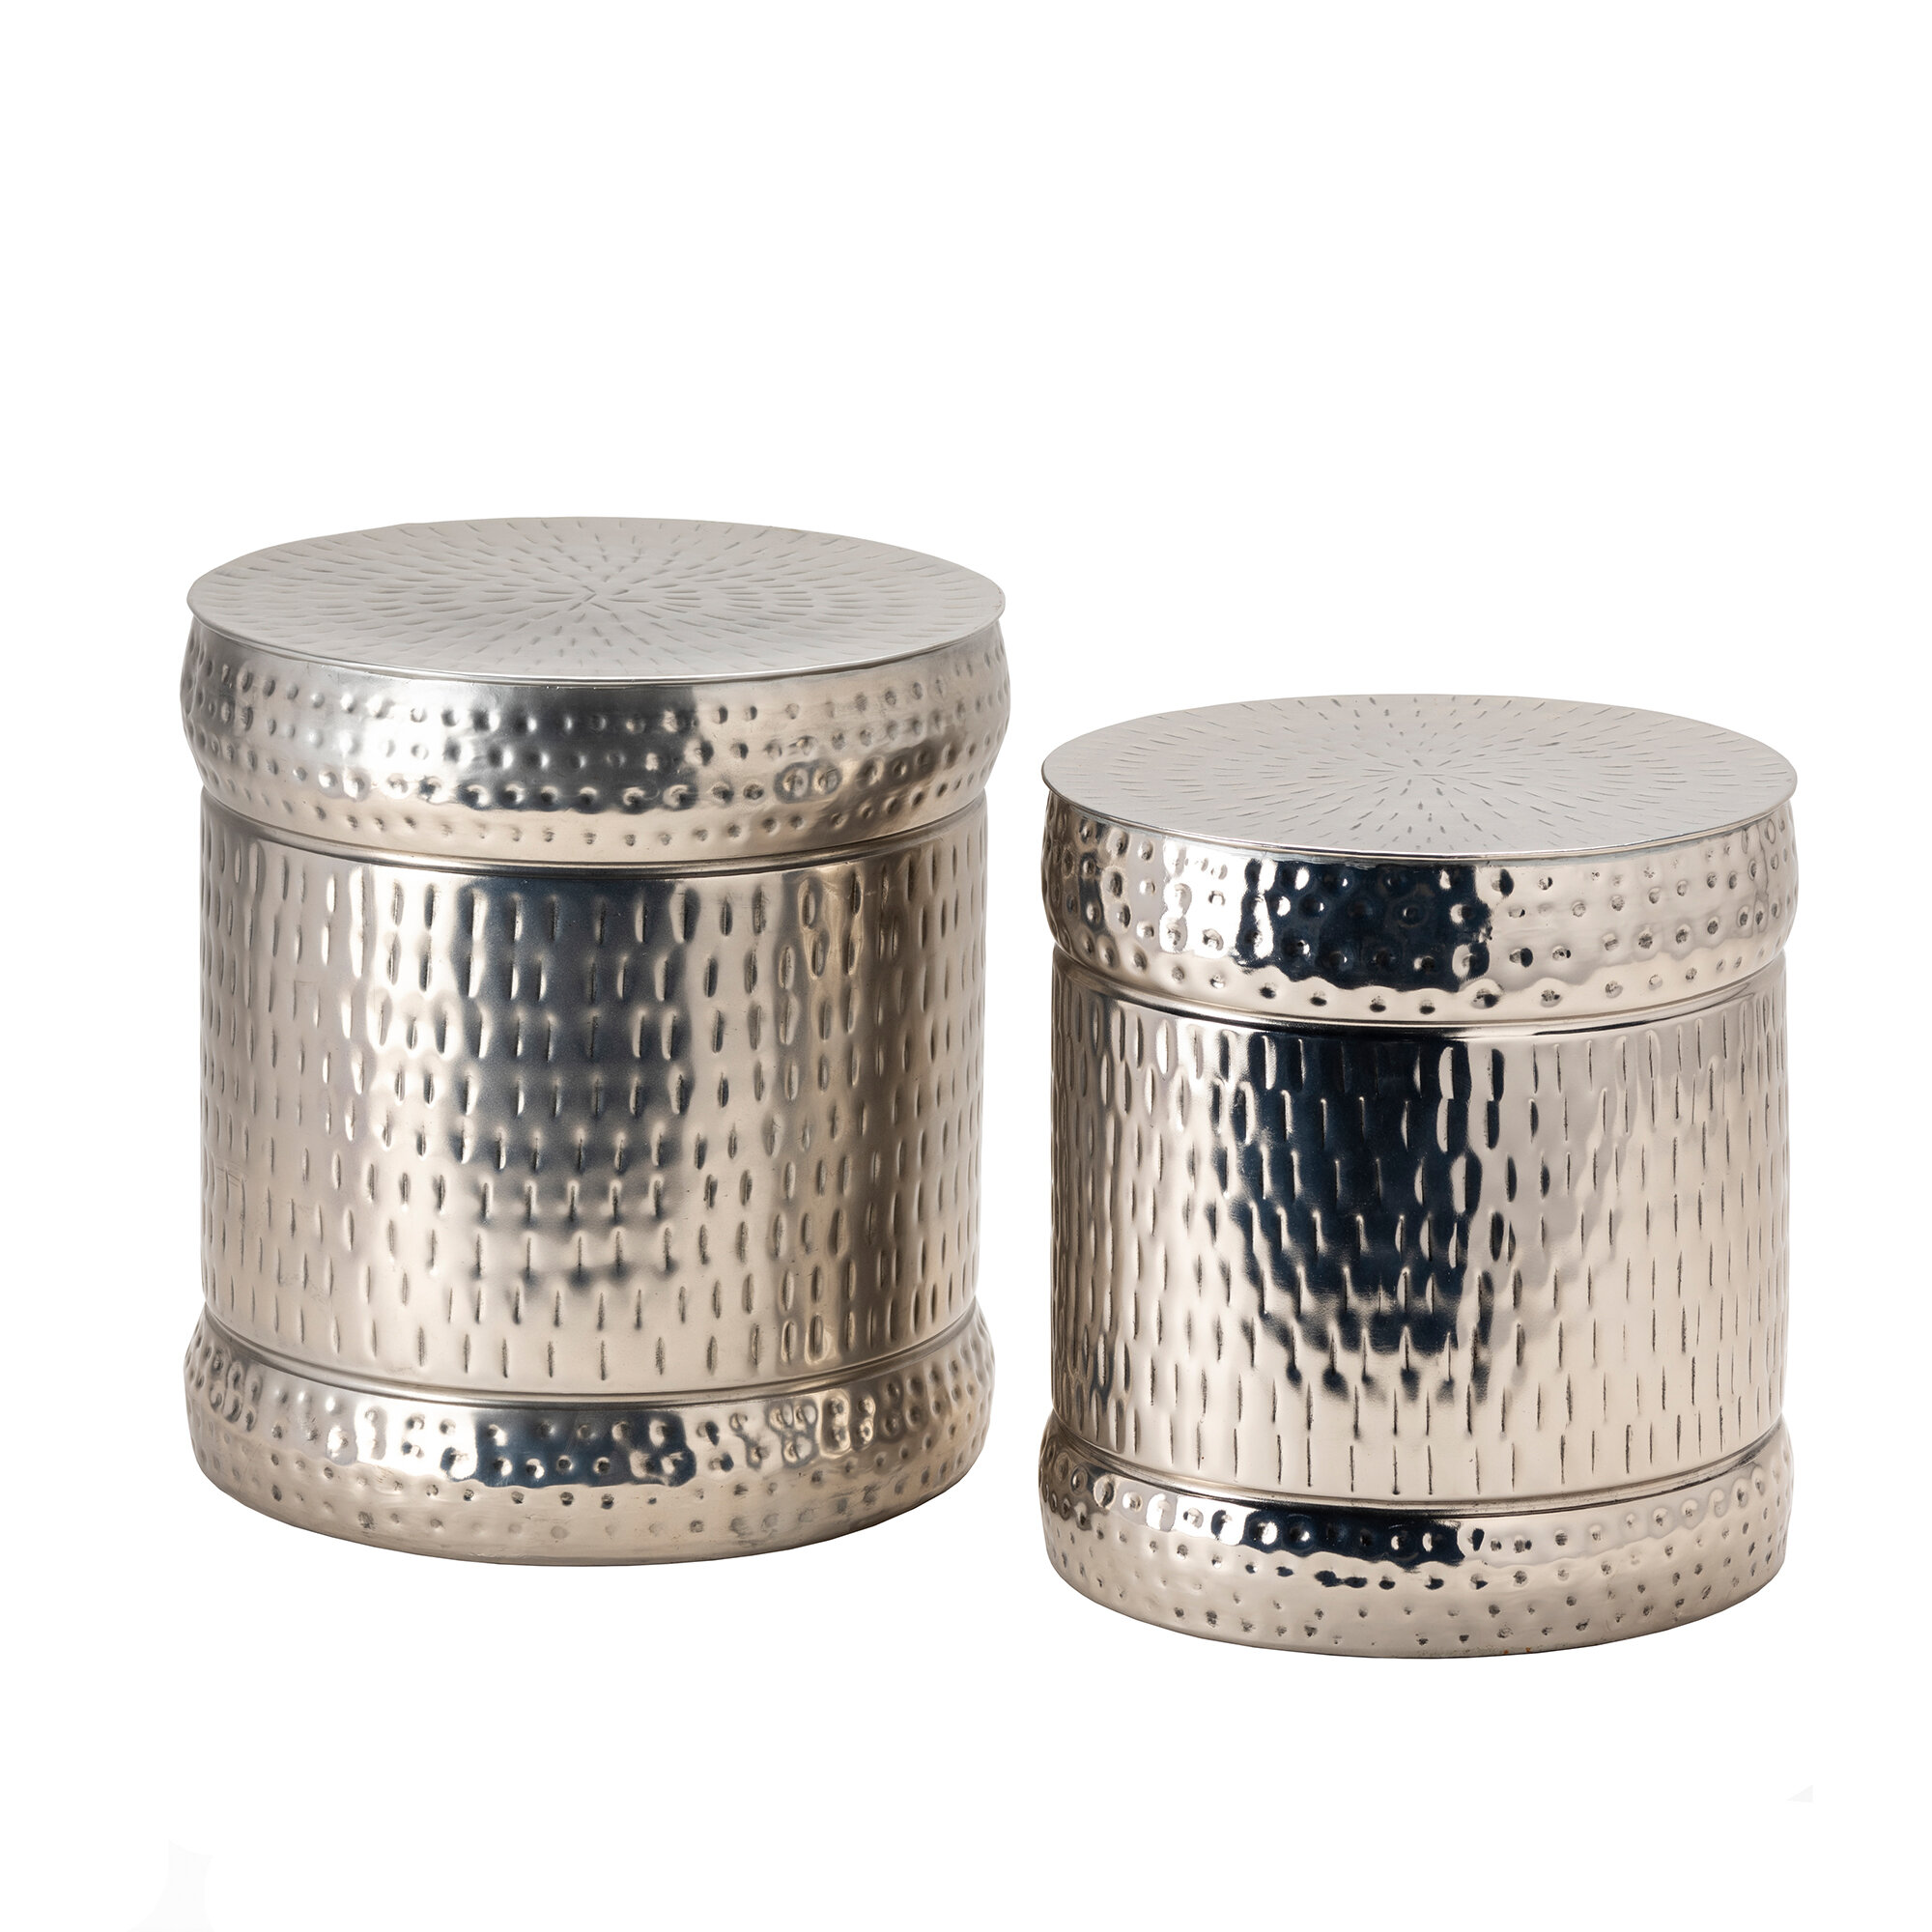 Silver Accent Stools You Ll Love In 2021 Wayfair